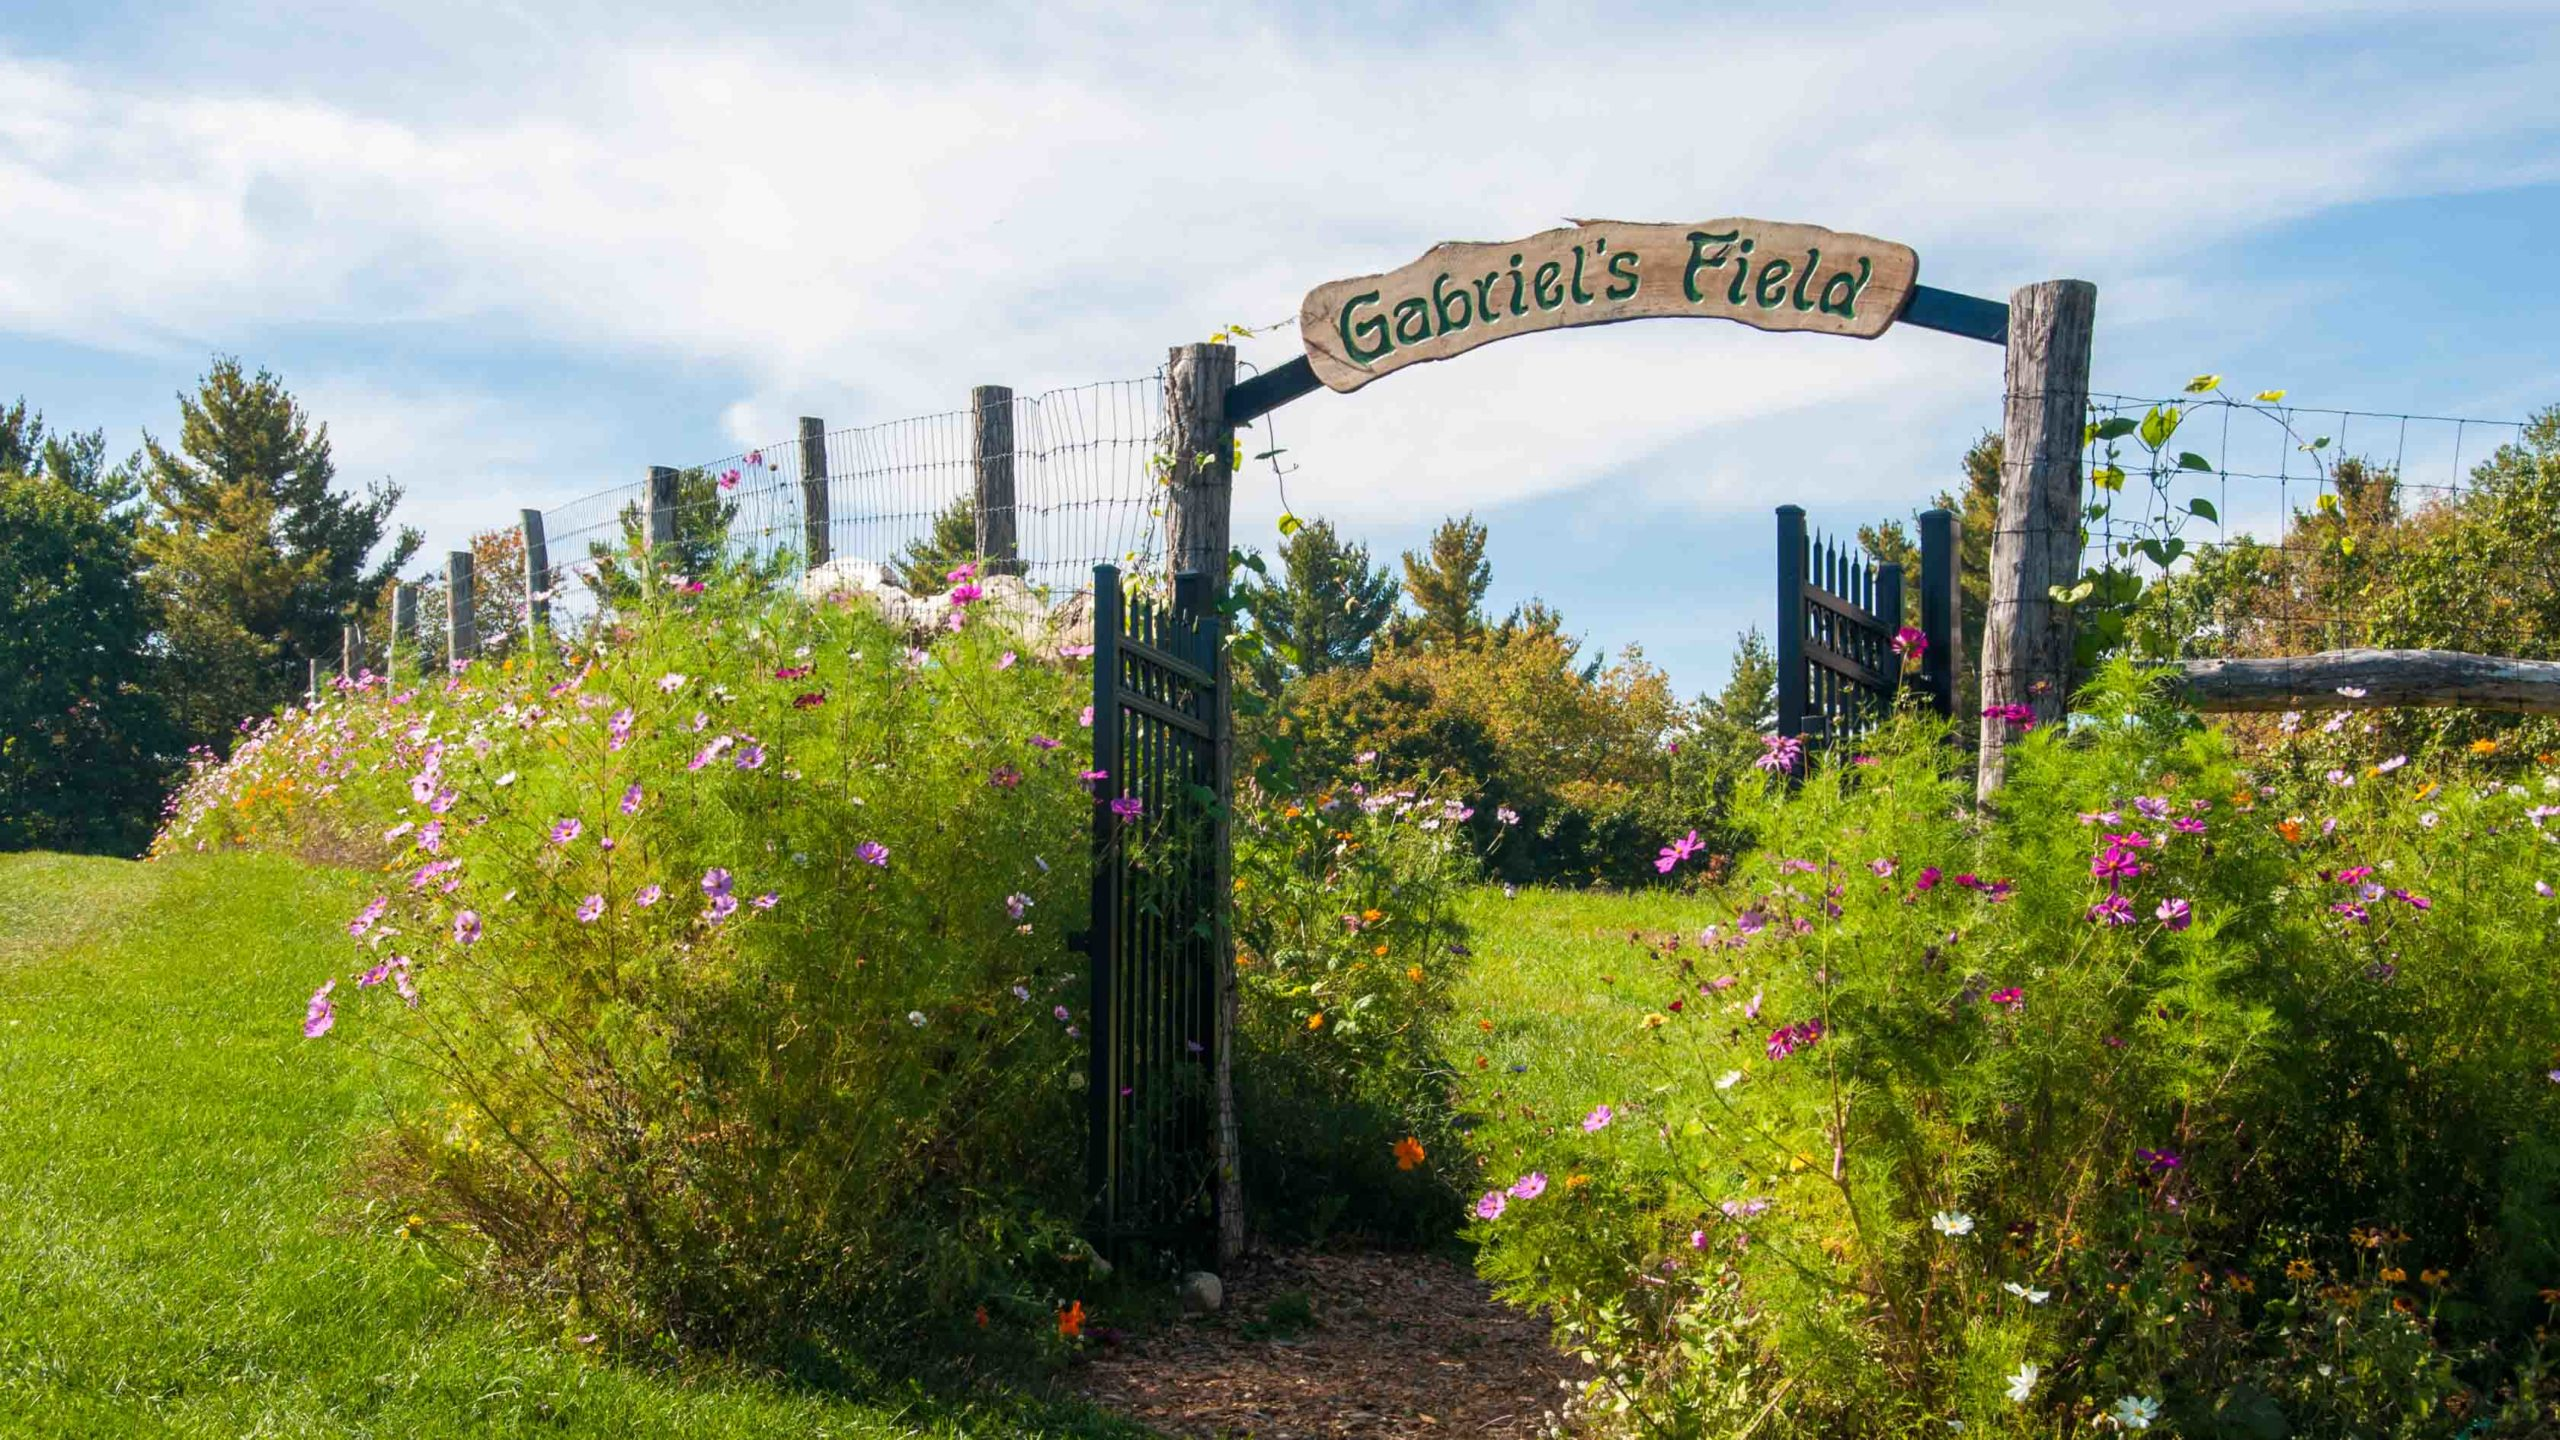 A view of the entrance to Gabriel's Field, a garden.